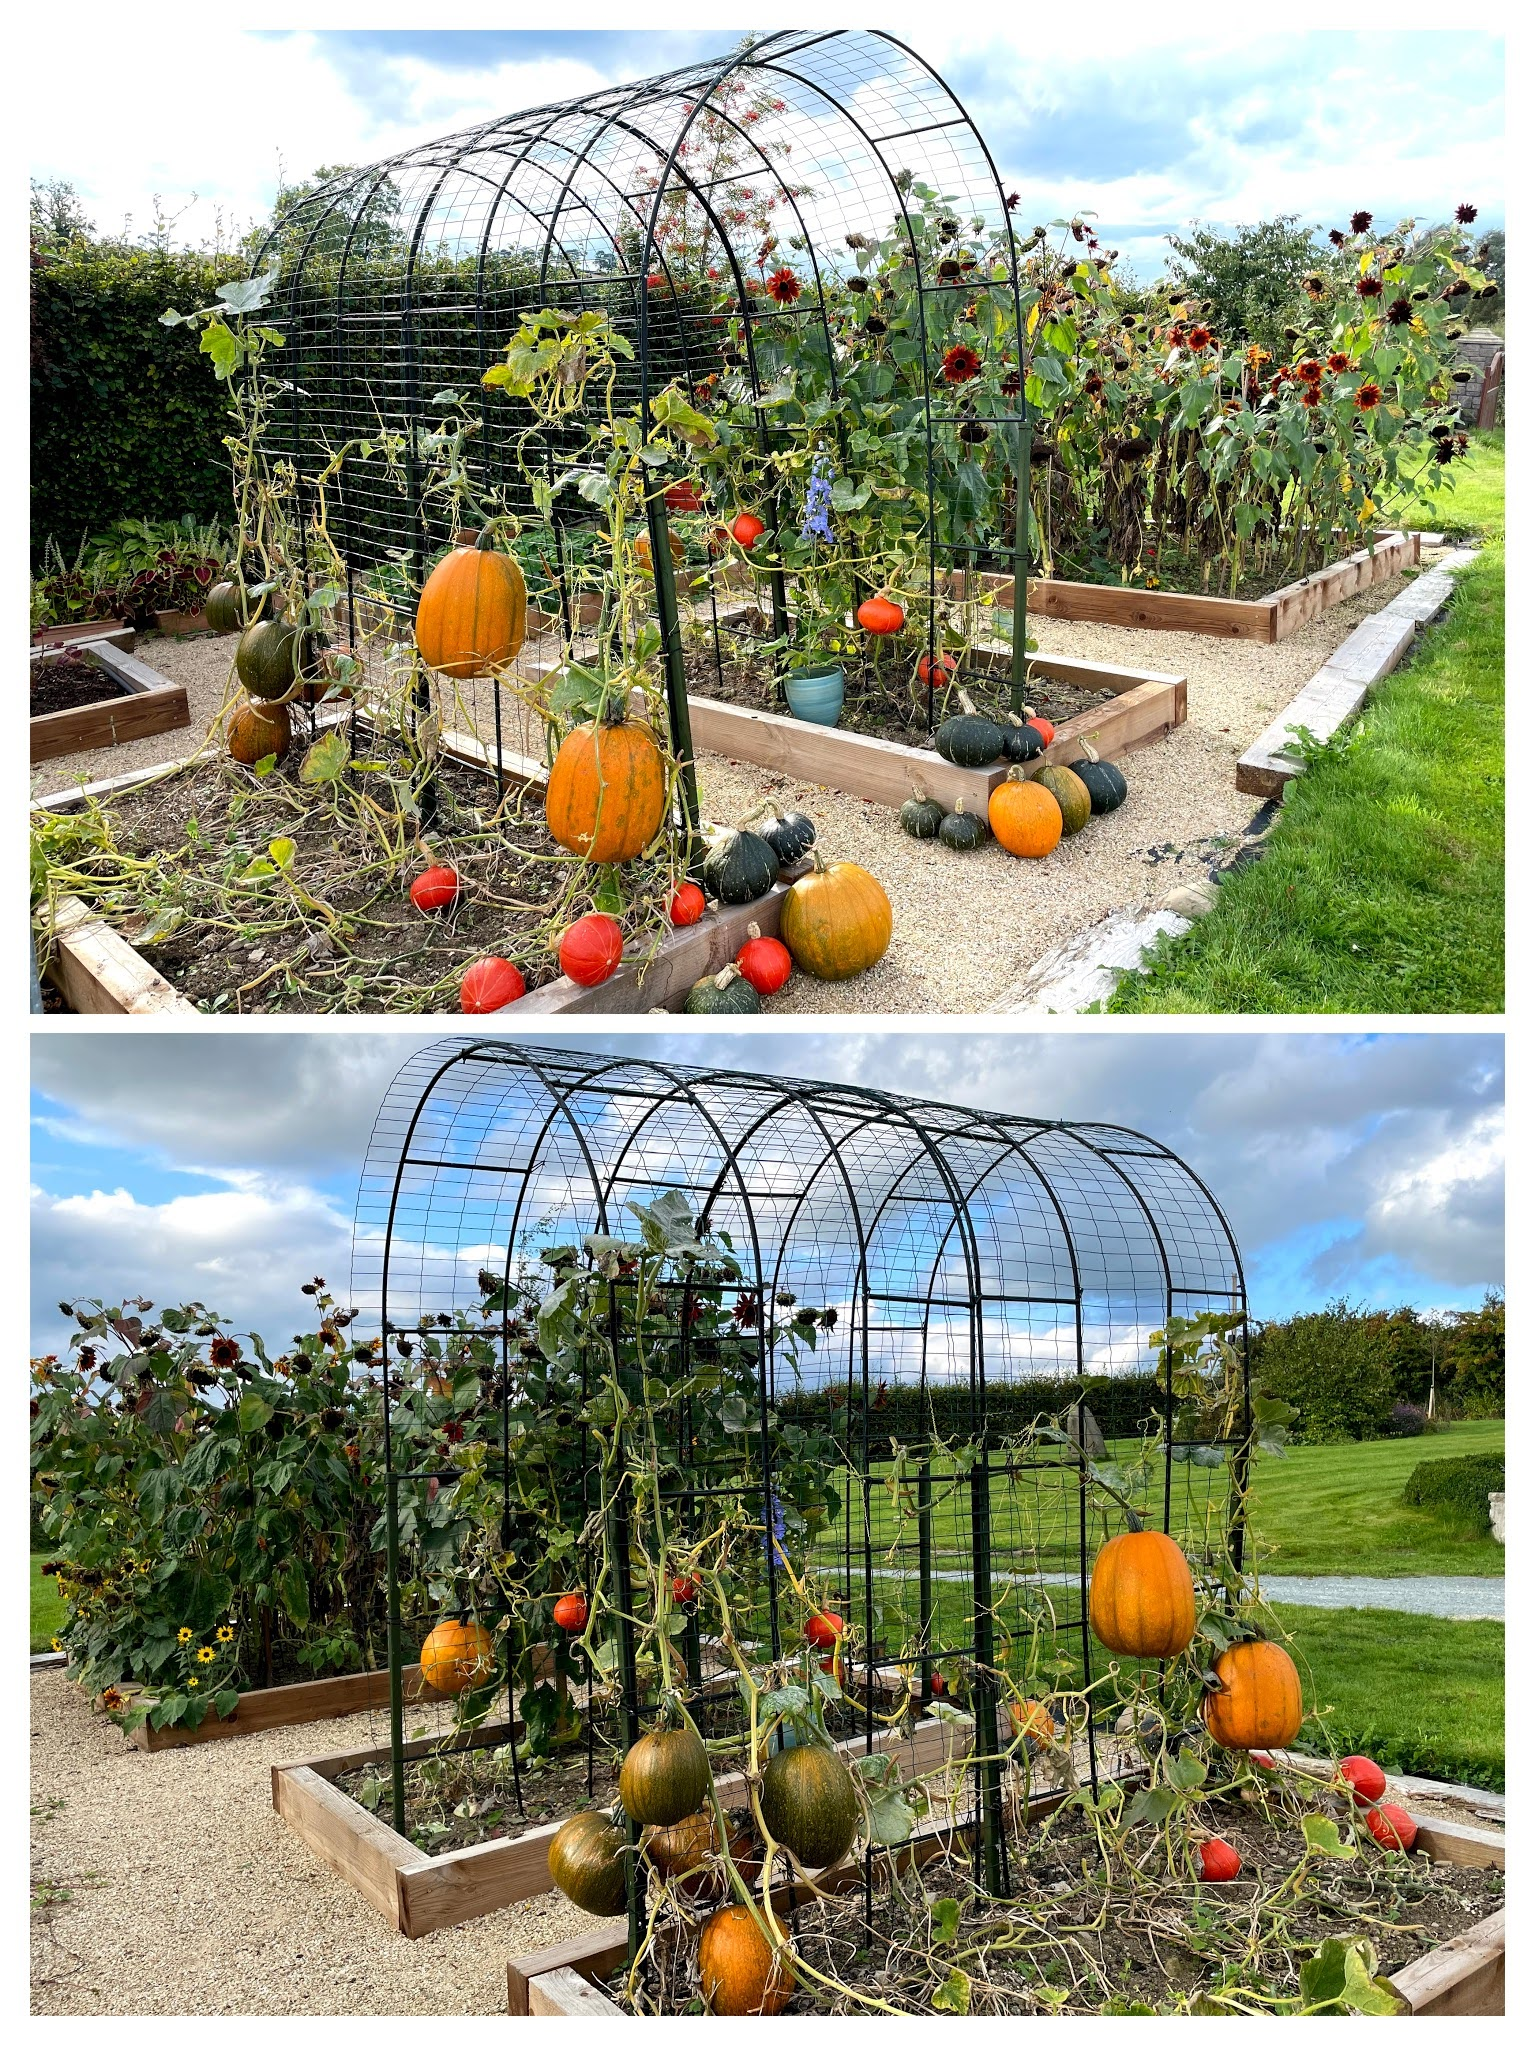 The front and back view of the pumpkin arch with squash and pumpkins